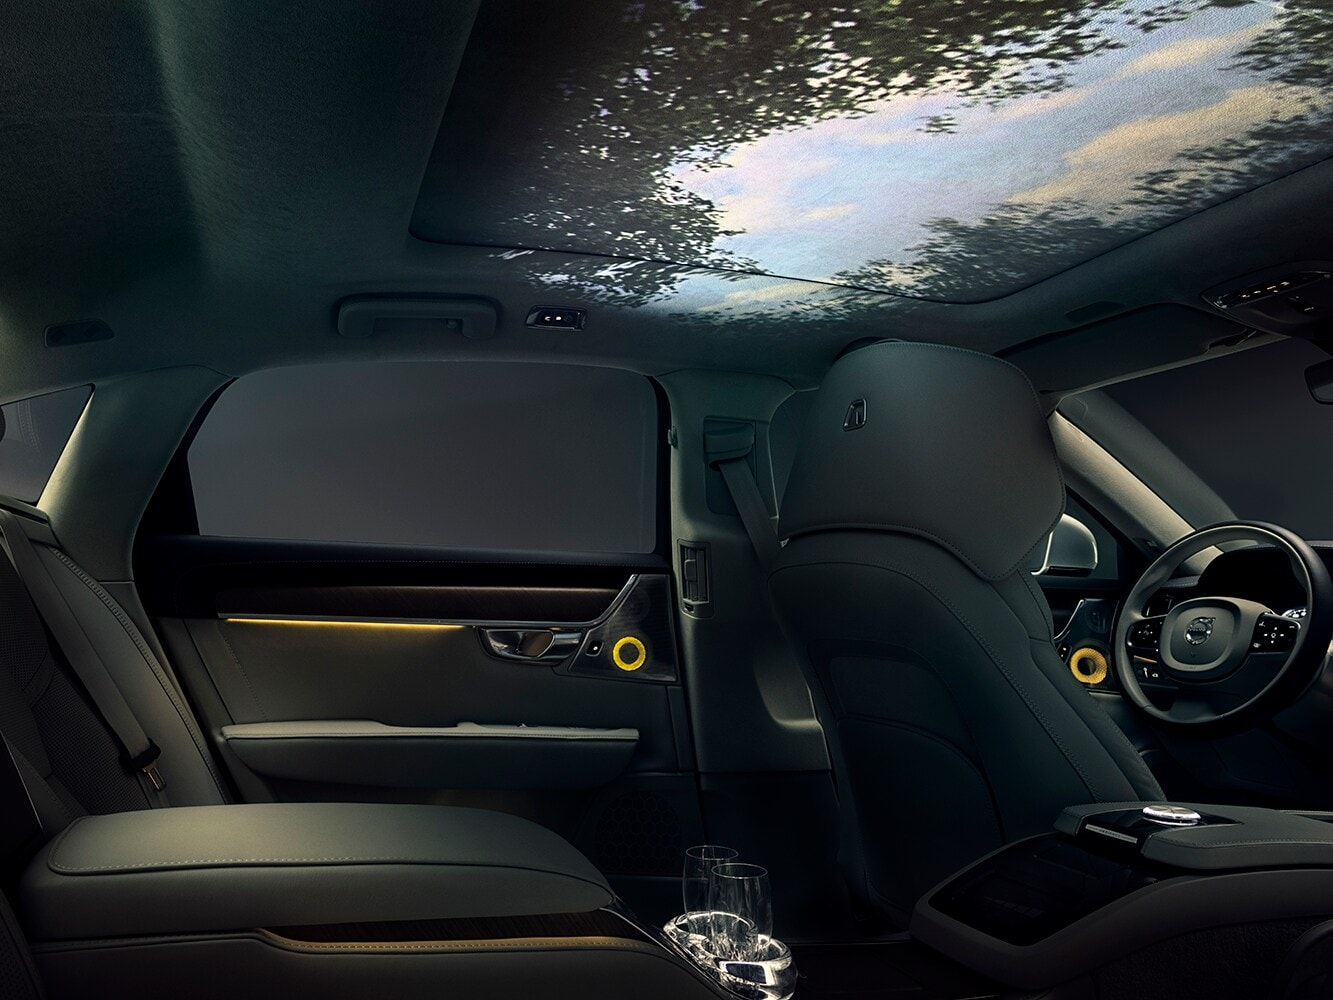 Interior of our concept for multi-sensory in-car experience with a panoramic forest sky view in the car ceiling